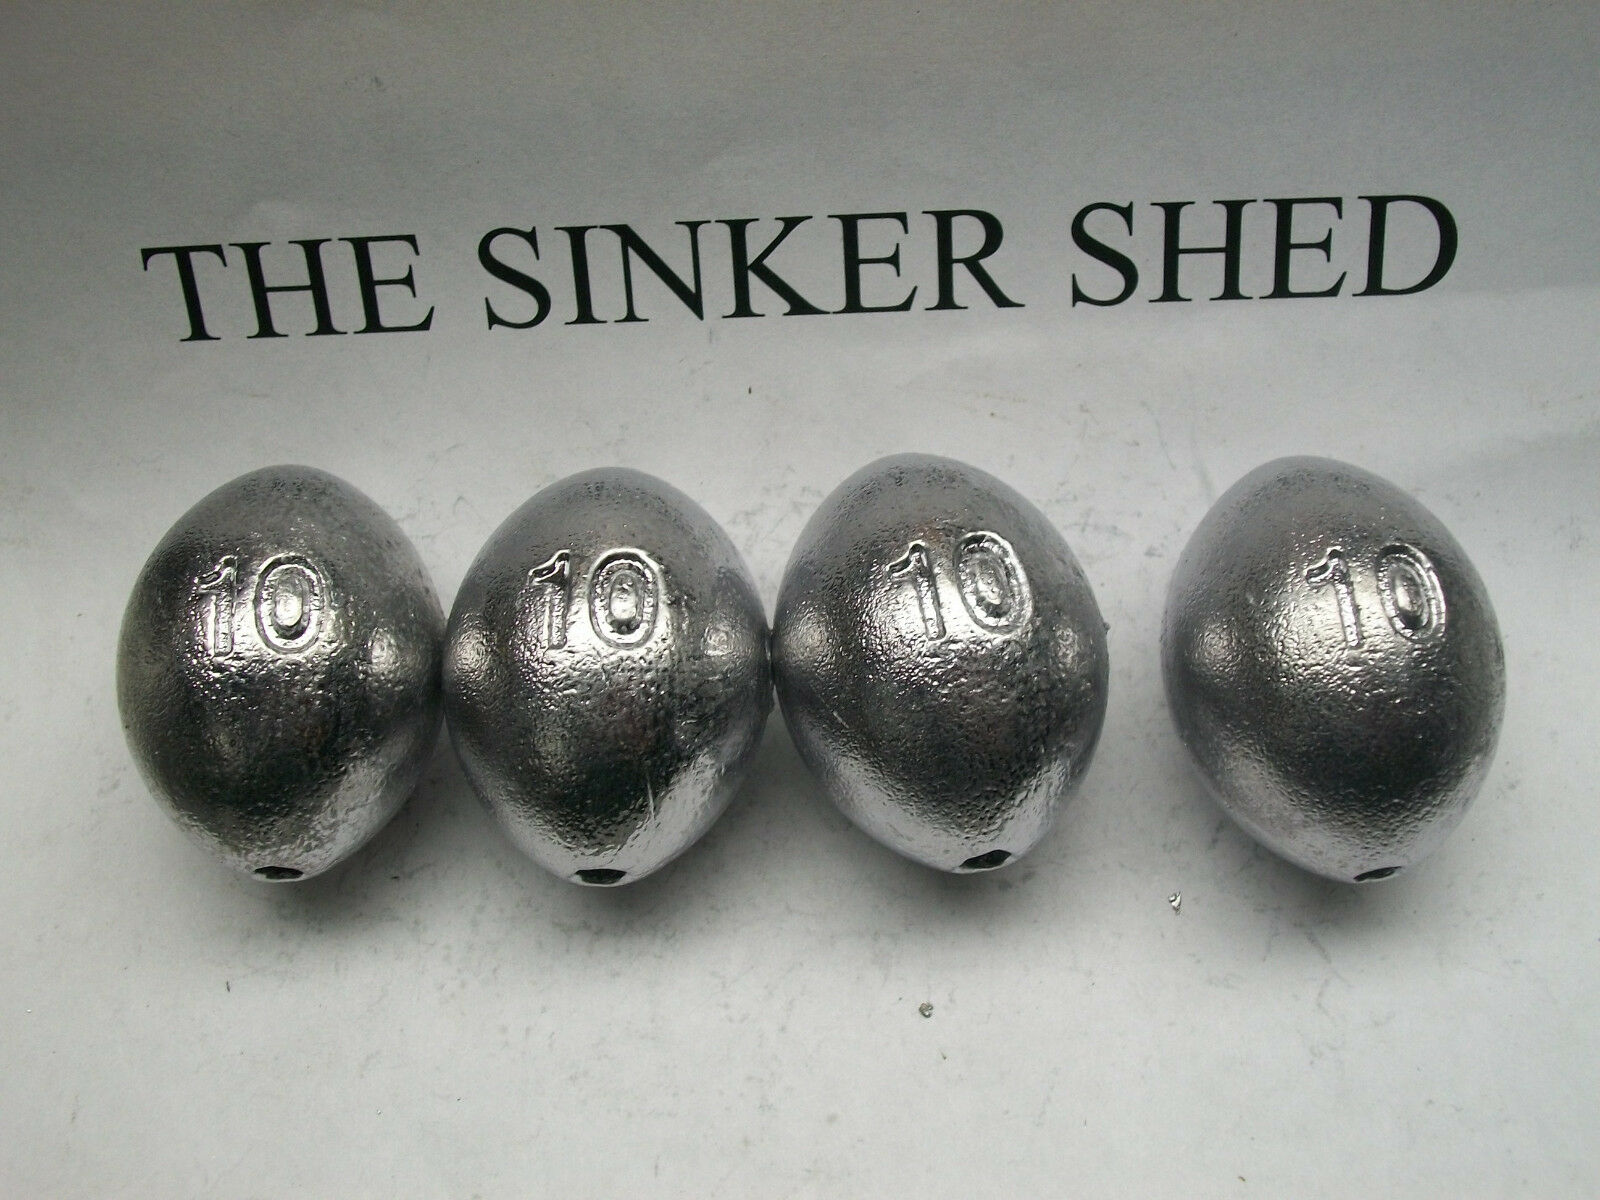 10 oz egg sinkers / decoy weights  - quantity quantity quantity of 5/10/20/30/40/50  FREE SHIPPING 60d8cb